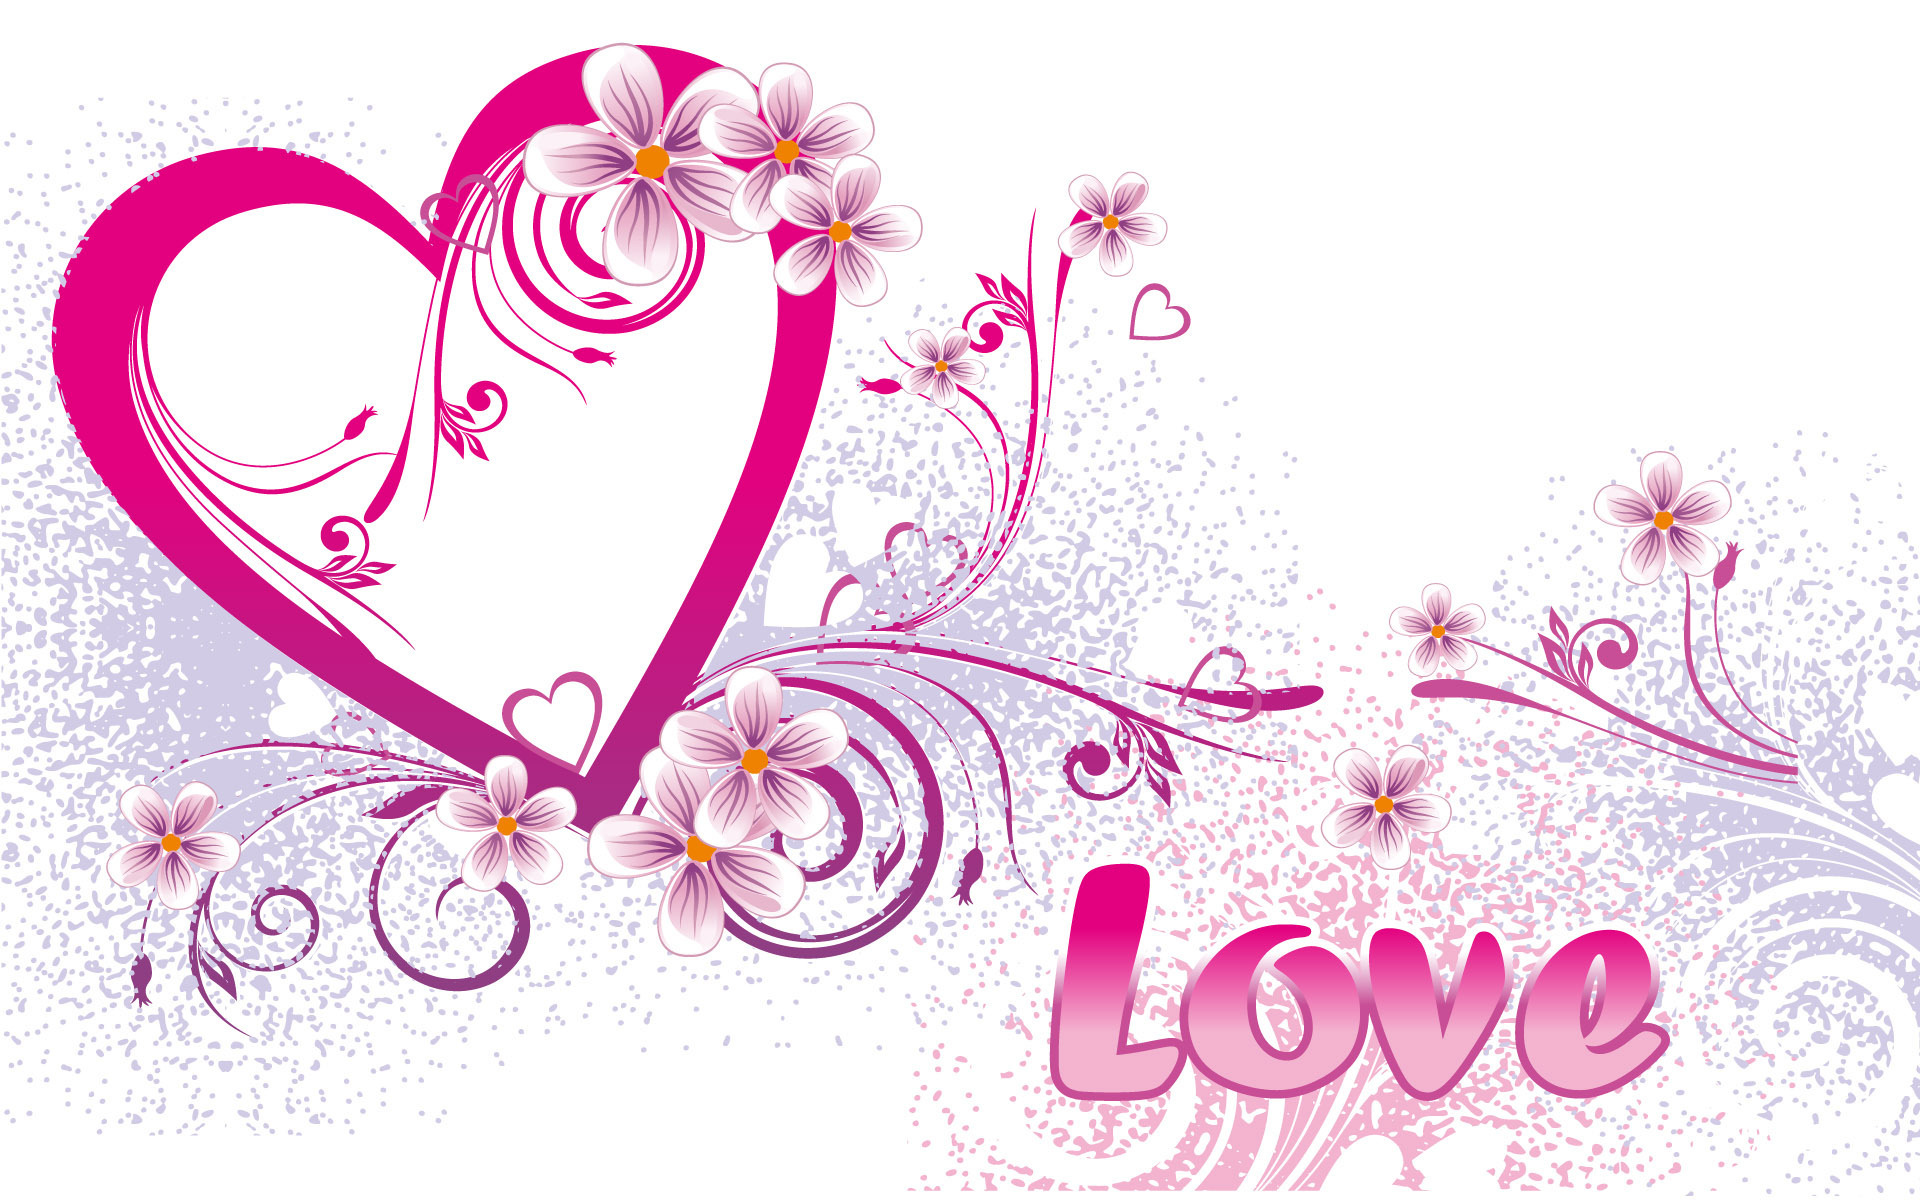 love images love wallpaper hd wallpaper and background photos (4187632)